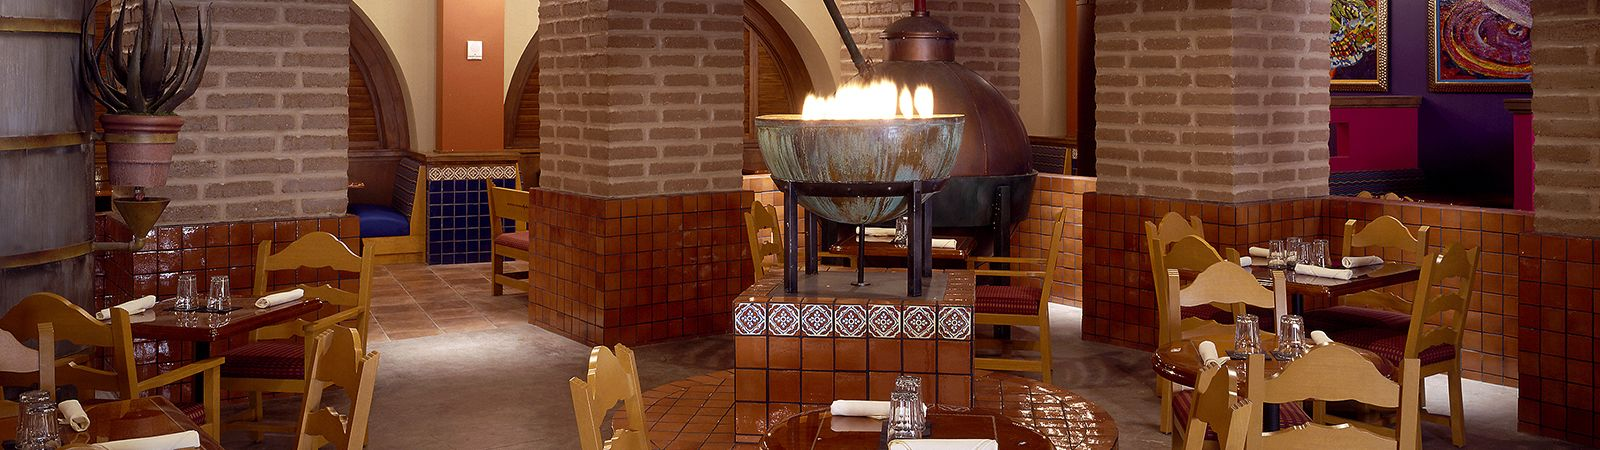 Tequila Factory Dining